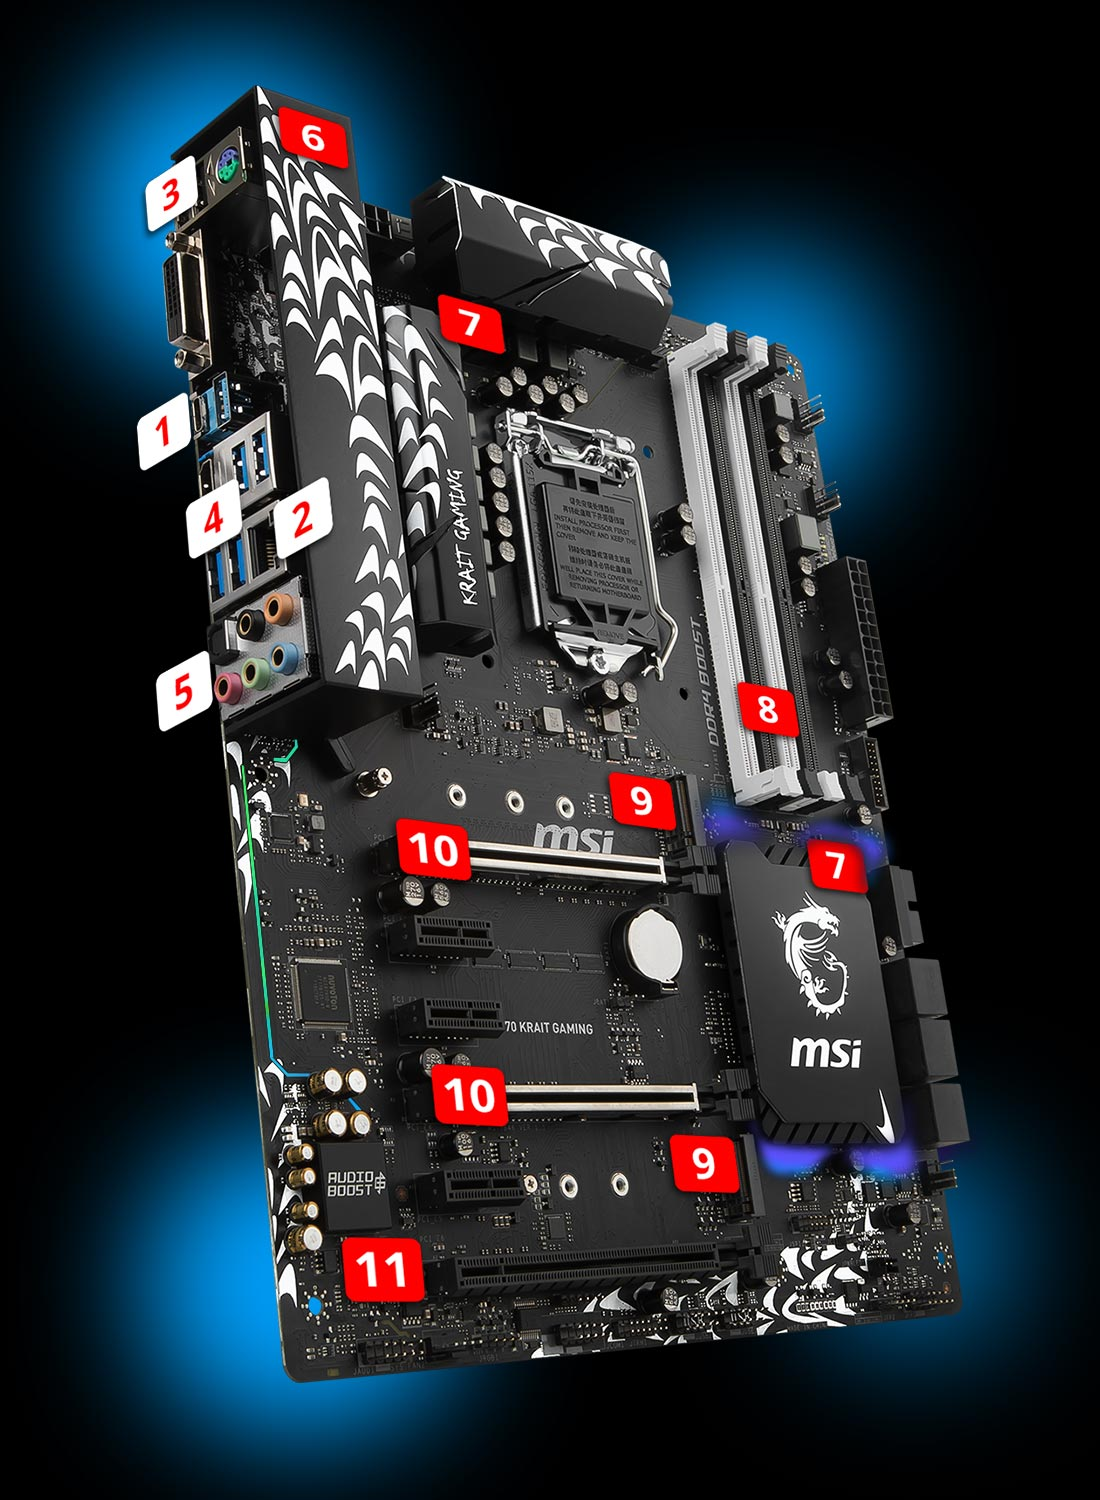 Z370 KRAIT GAMING | Motherboard - The world leader in motherboard